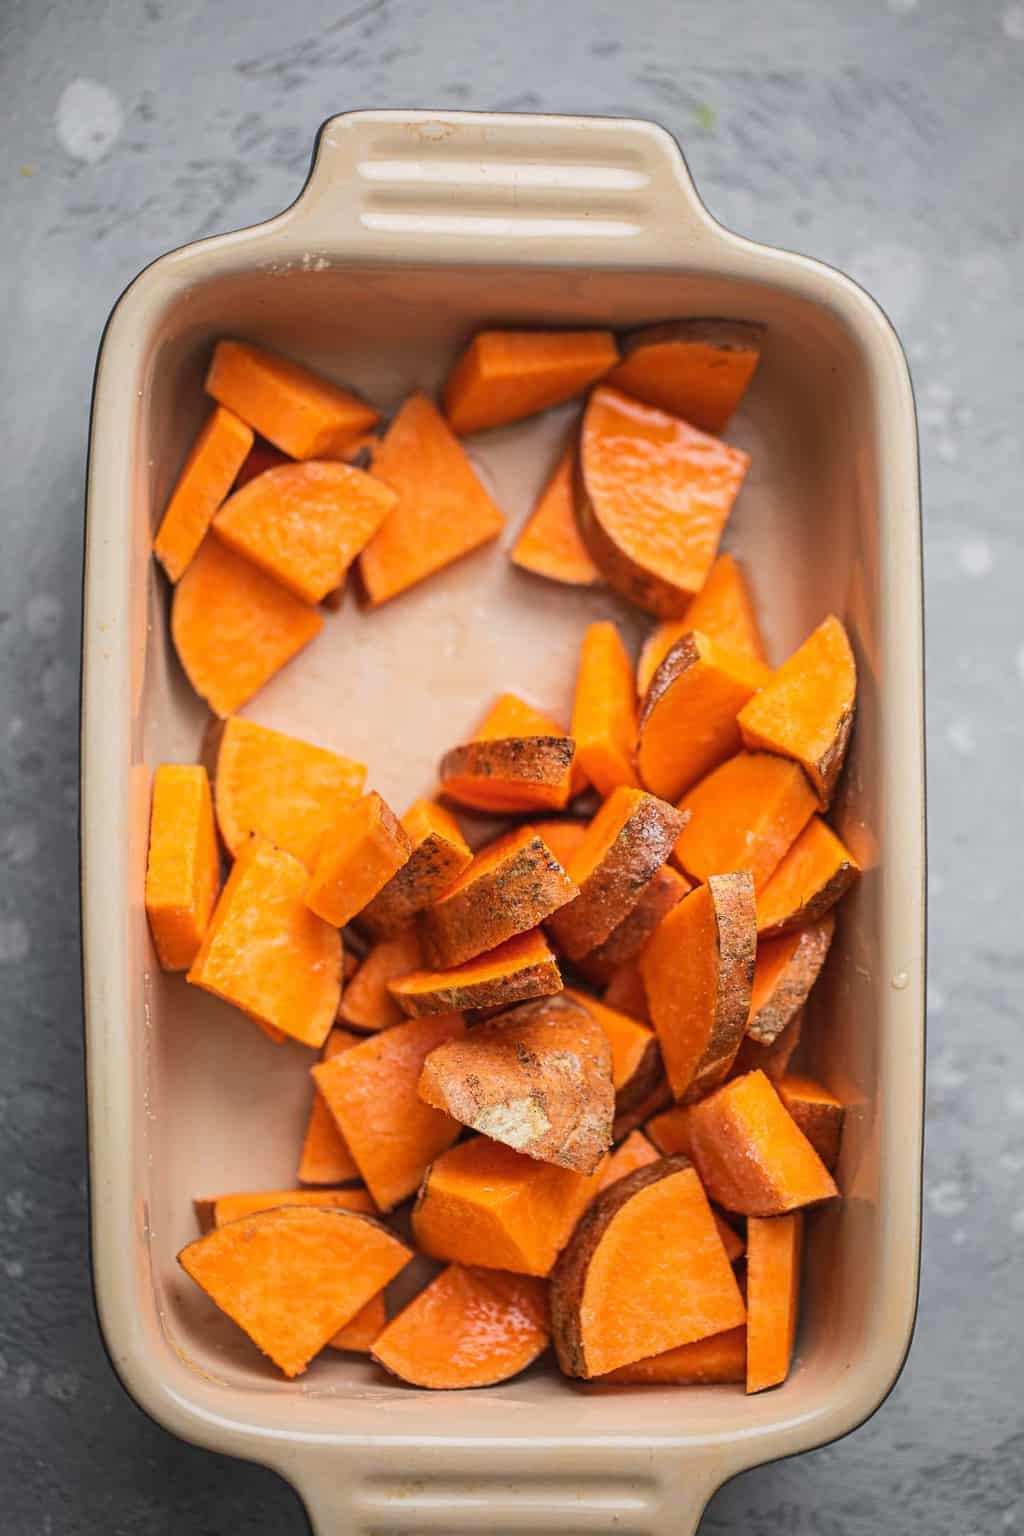 Sweet potato slices in a baking dish